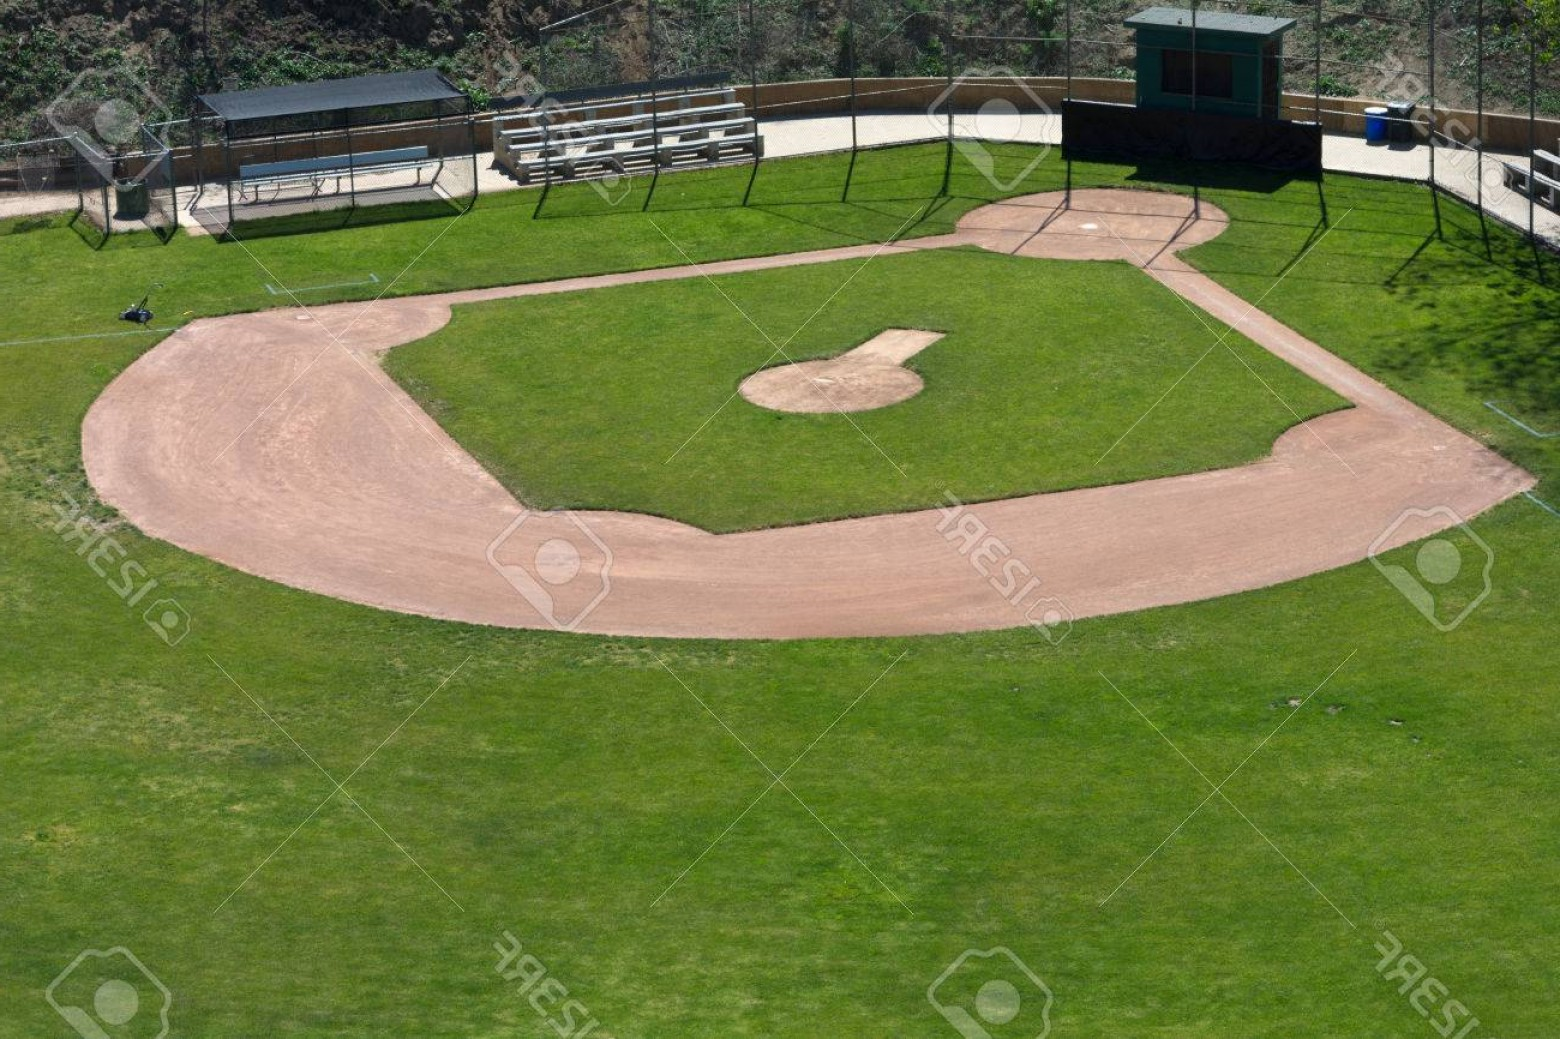 Little League Baseball Vector Logo No Text: Photolittle League Baseball Field With Green Grass And Dirt